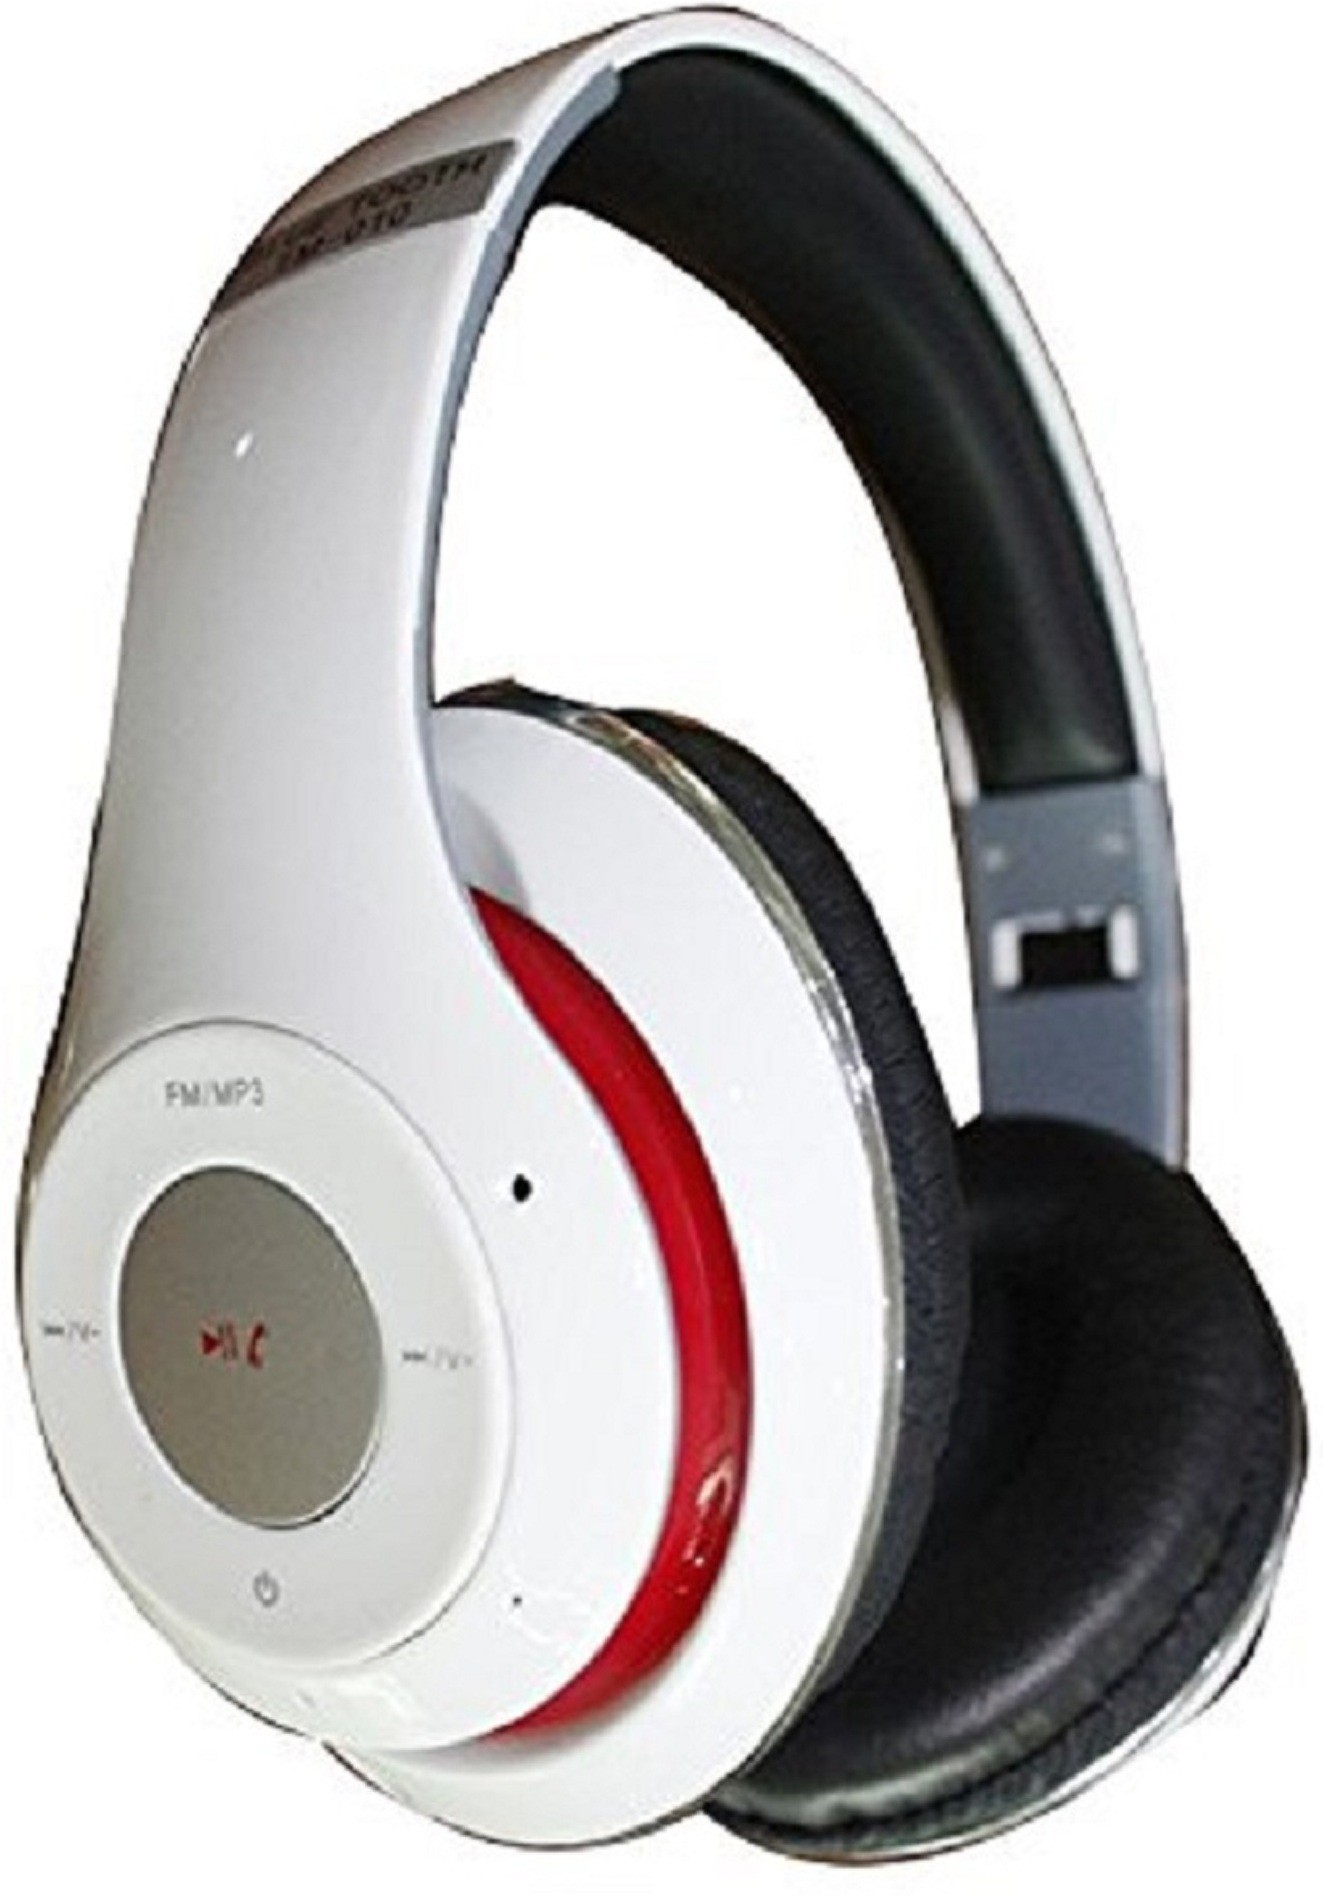 Aomax TM010 Twice Wired & Wireless Bluetooth Headset With Mic(White)